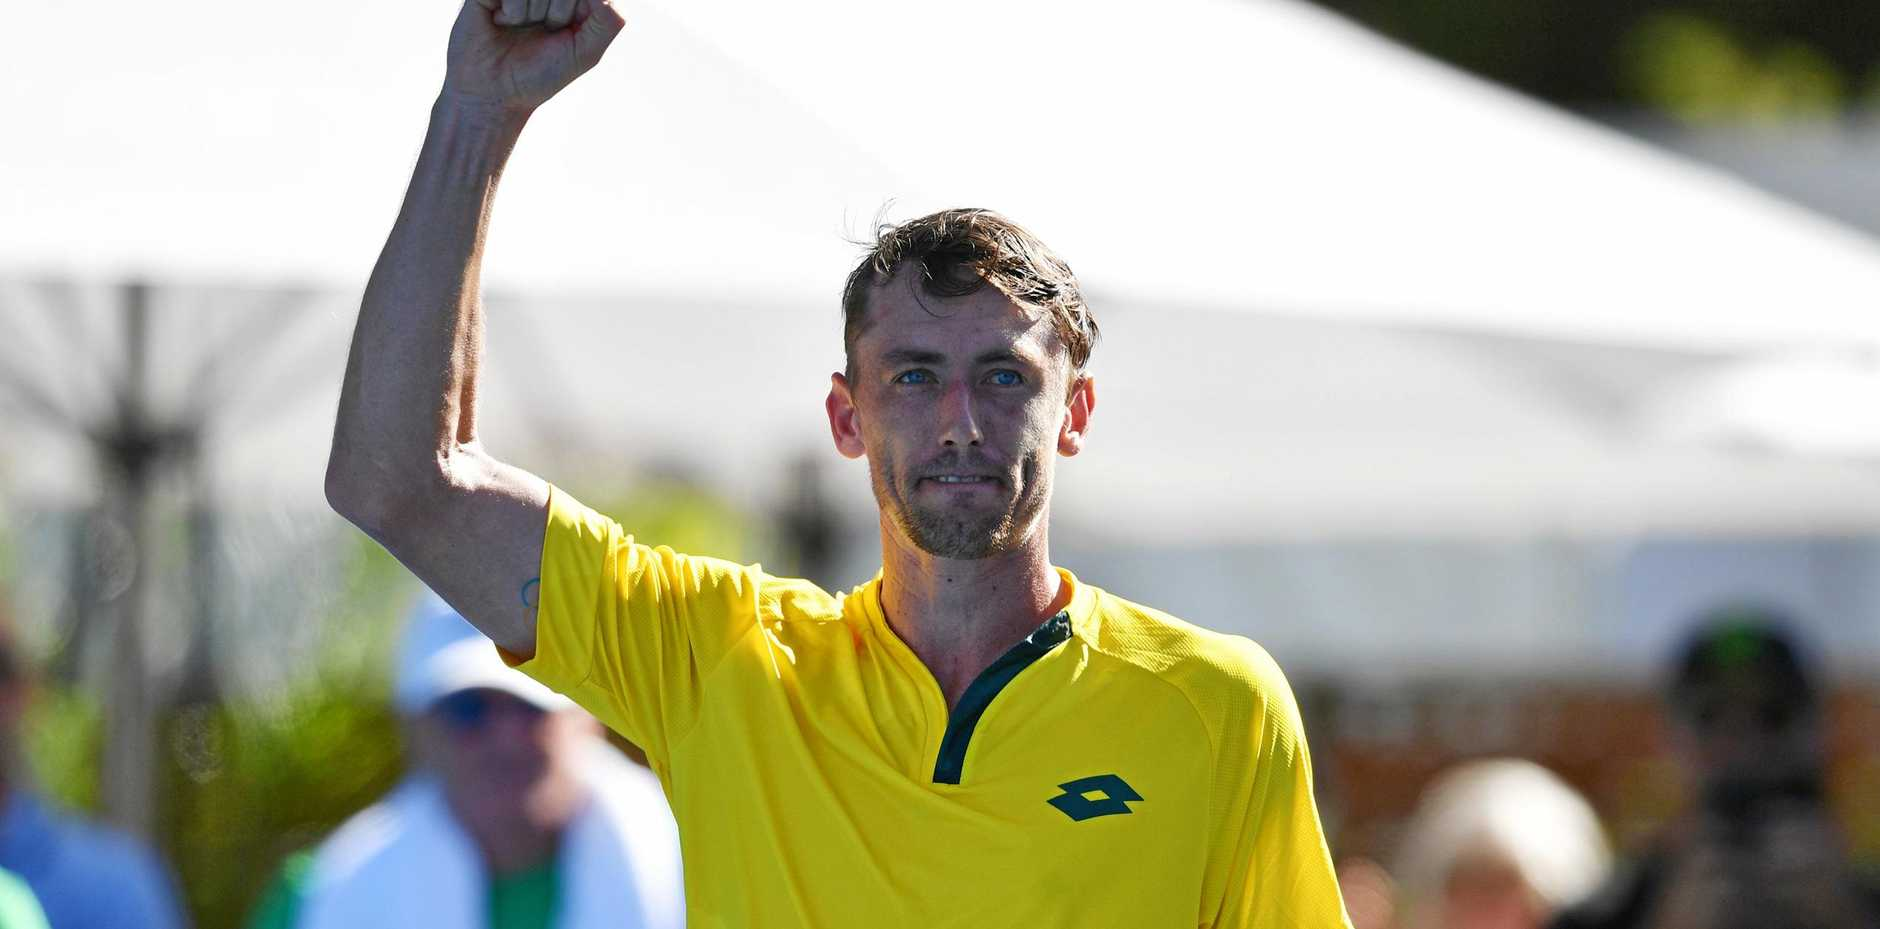 John Millman celebrates after winning first round match in the Davis Cup between Australia and Bosnia and Herzegovina at Memorial Drive in Adelaide. Picture: David Mariuz/AAP